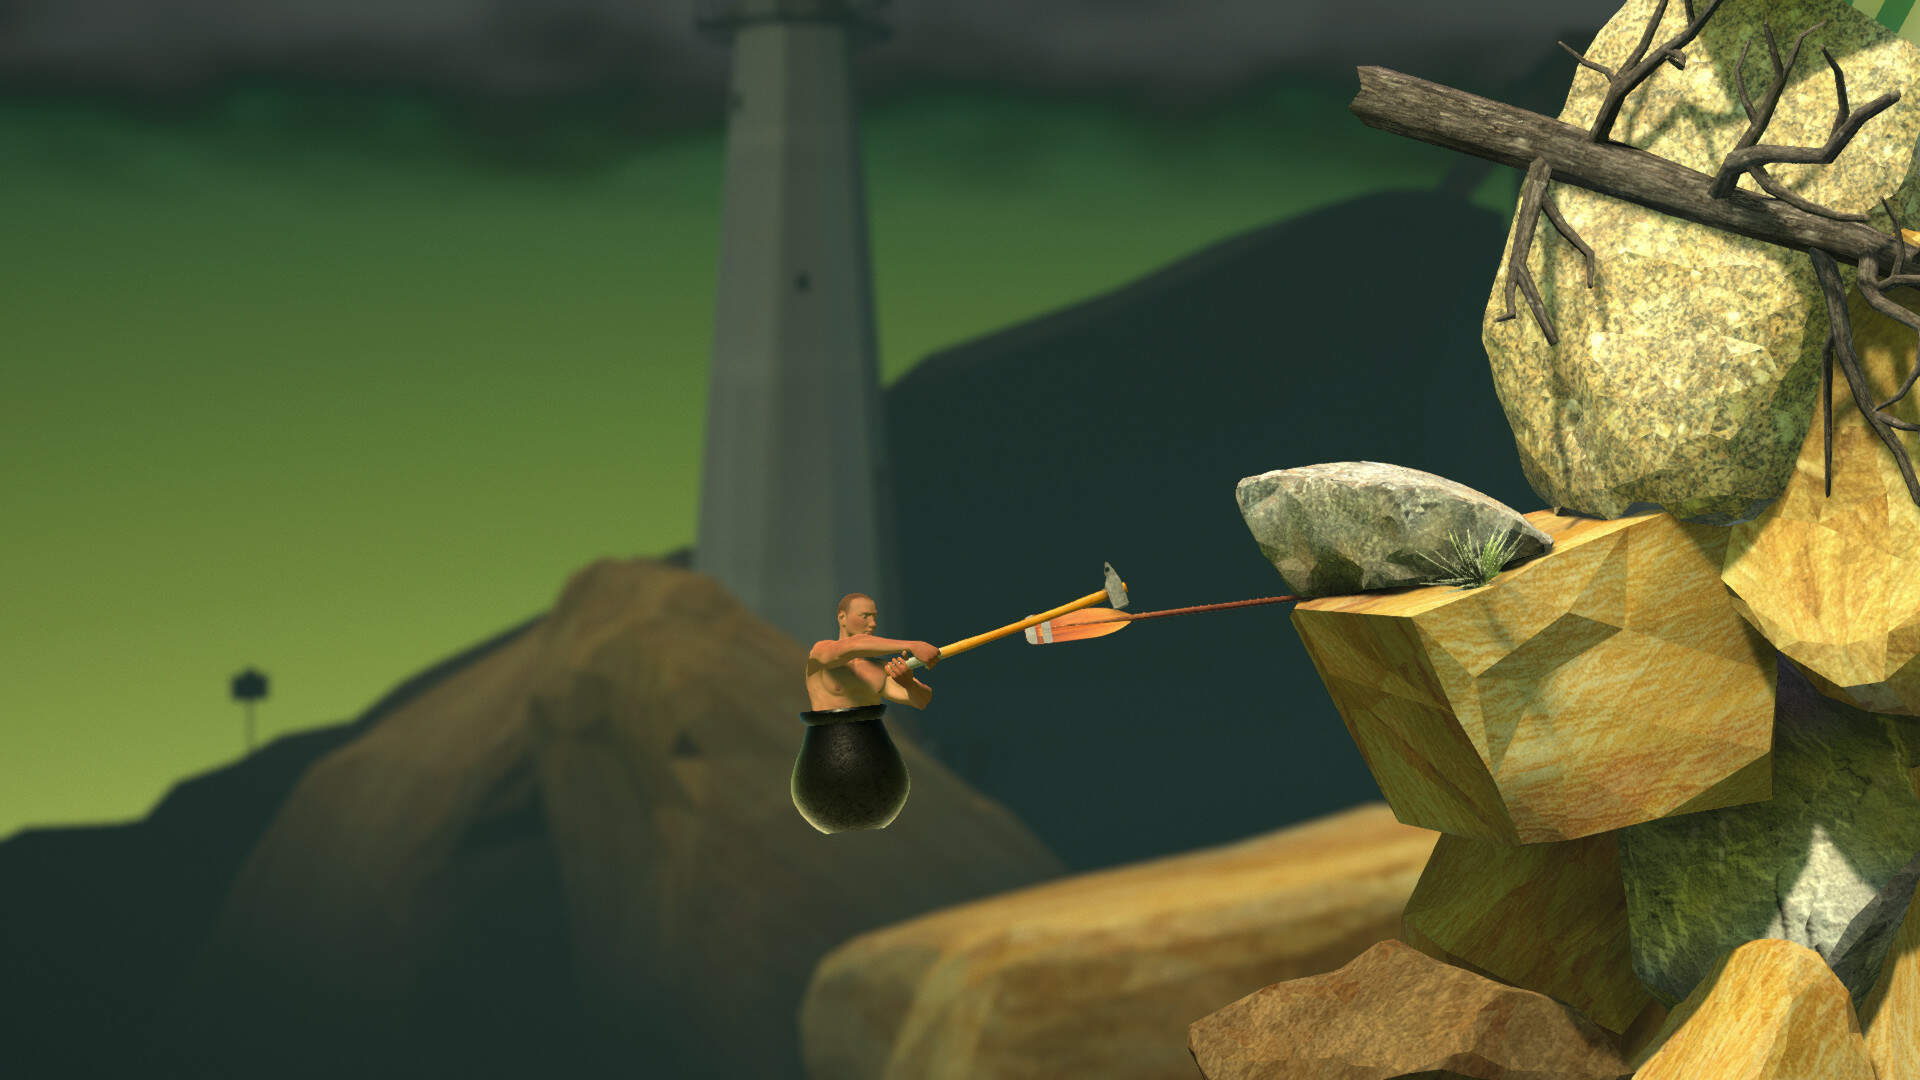 """""""I Want to be Treated by My Audience Like a Human Being:"""" Developers Bennett Foddy and Zach Gage on Why Game Credits are Important"""